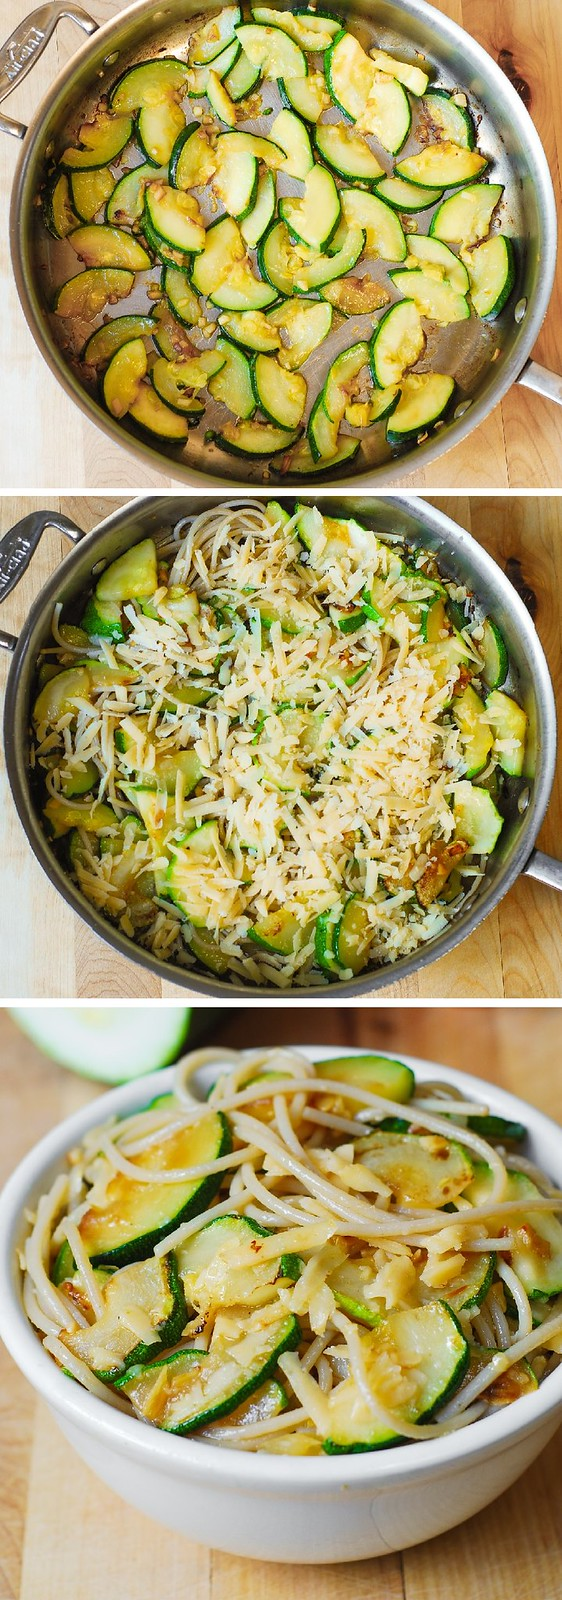 how to make zucchini pasta, gluten free recipes